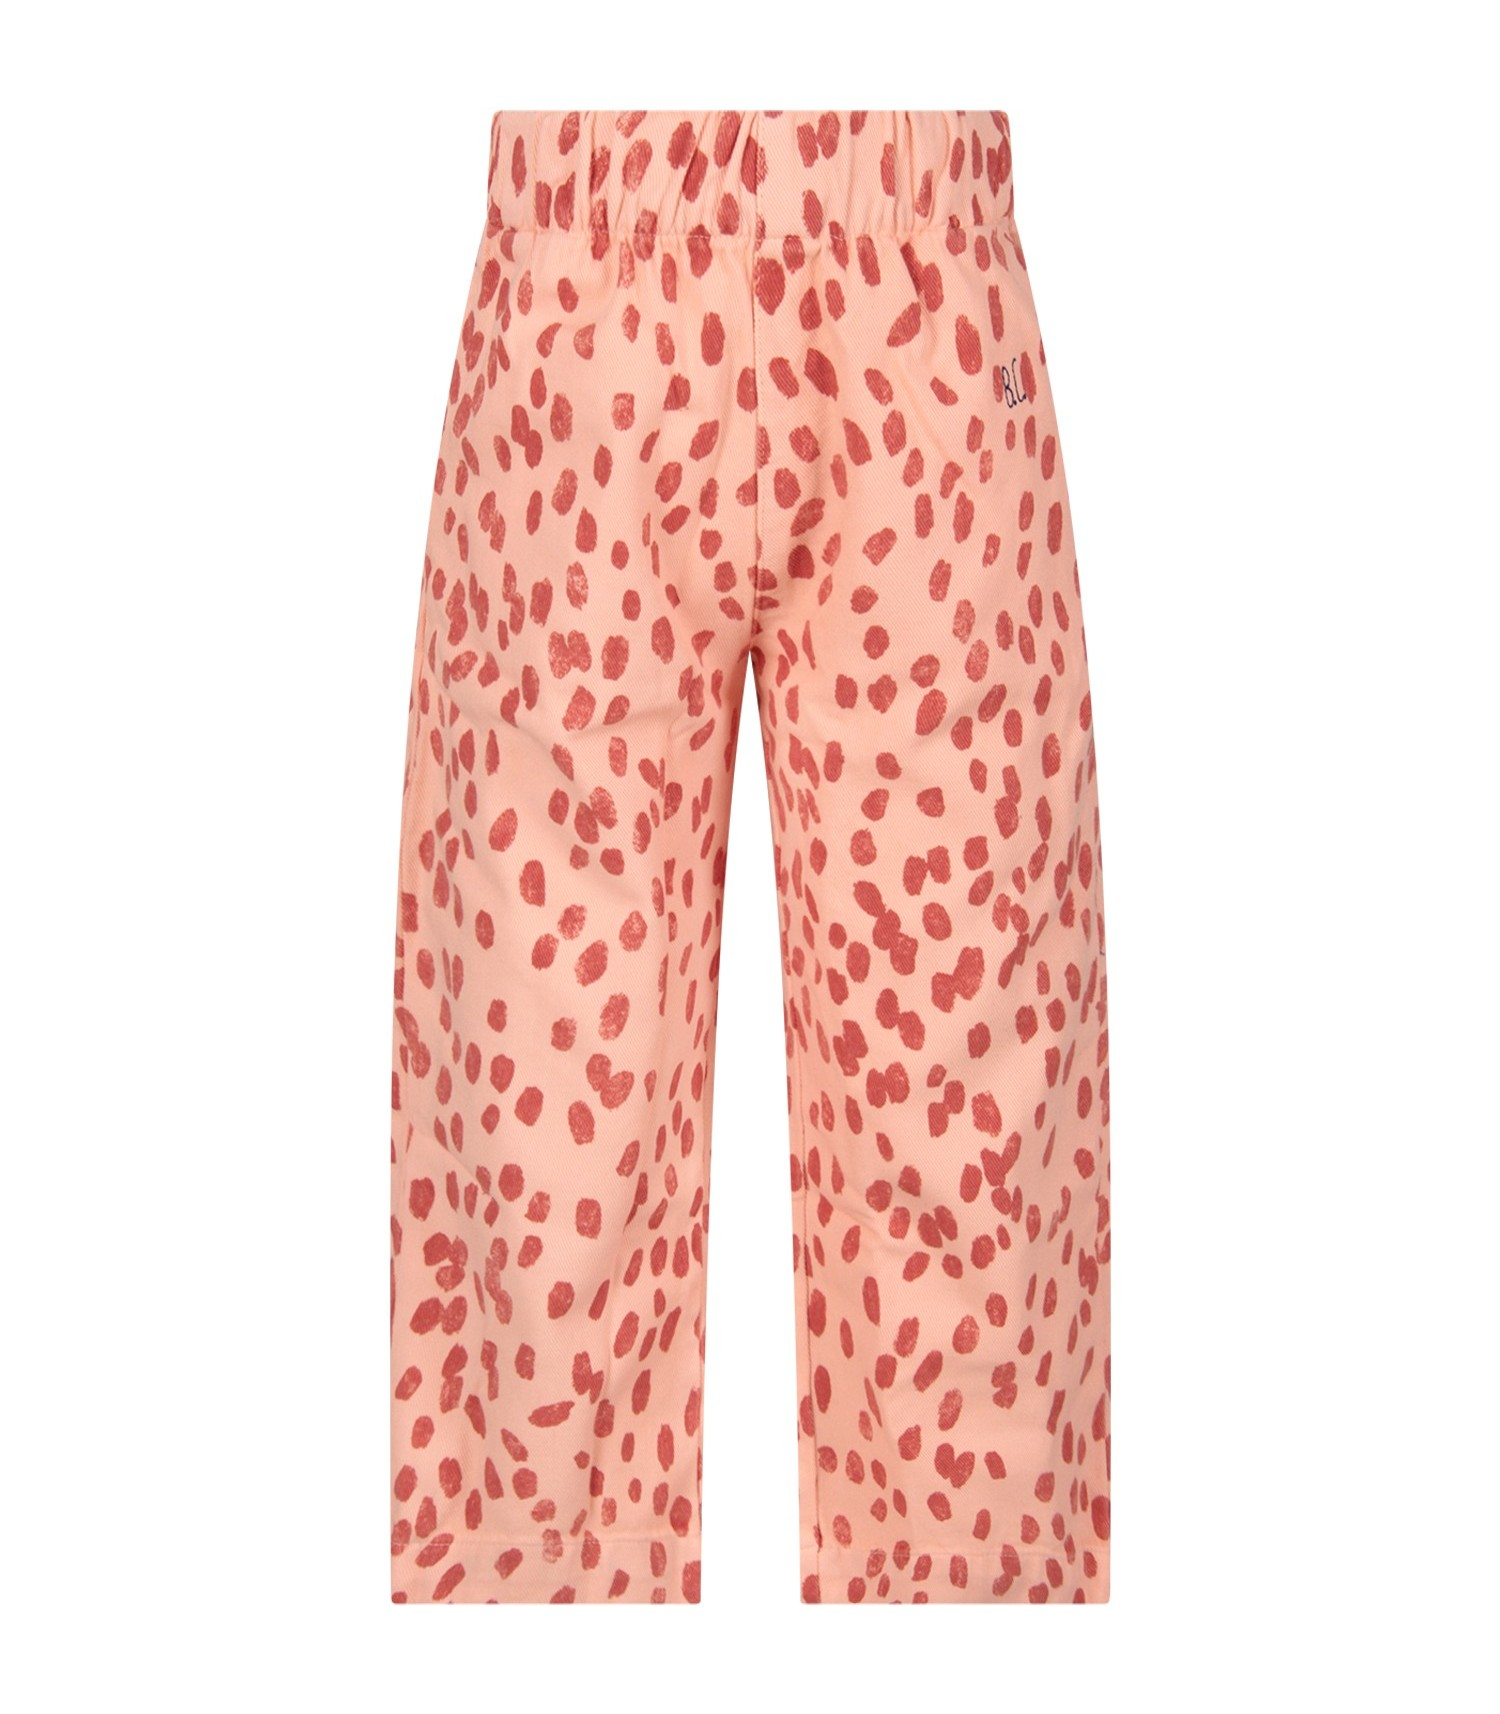 Bobo Choses Pink pants with brown spots for girl